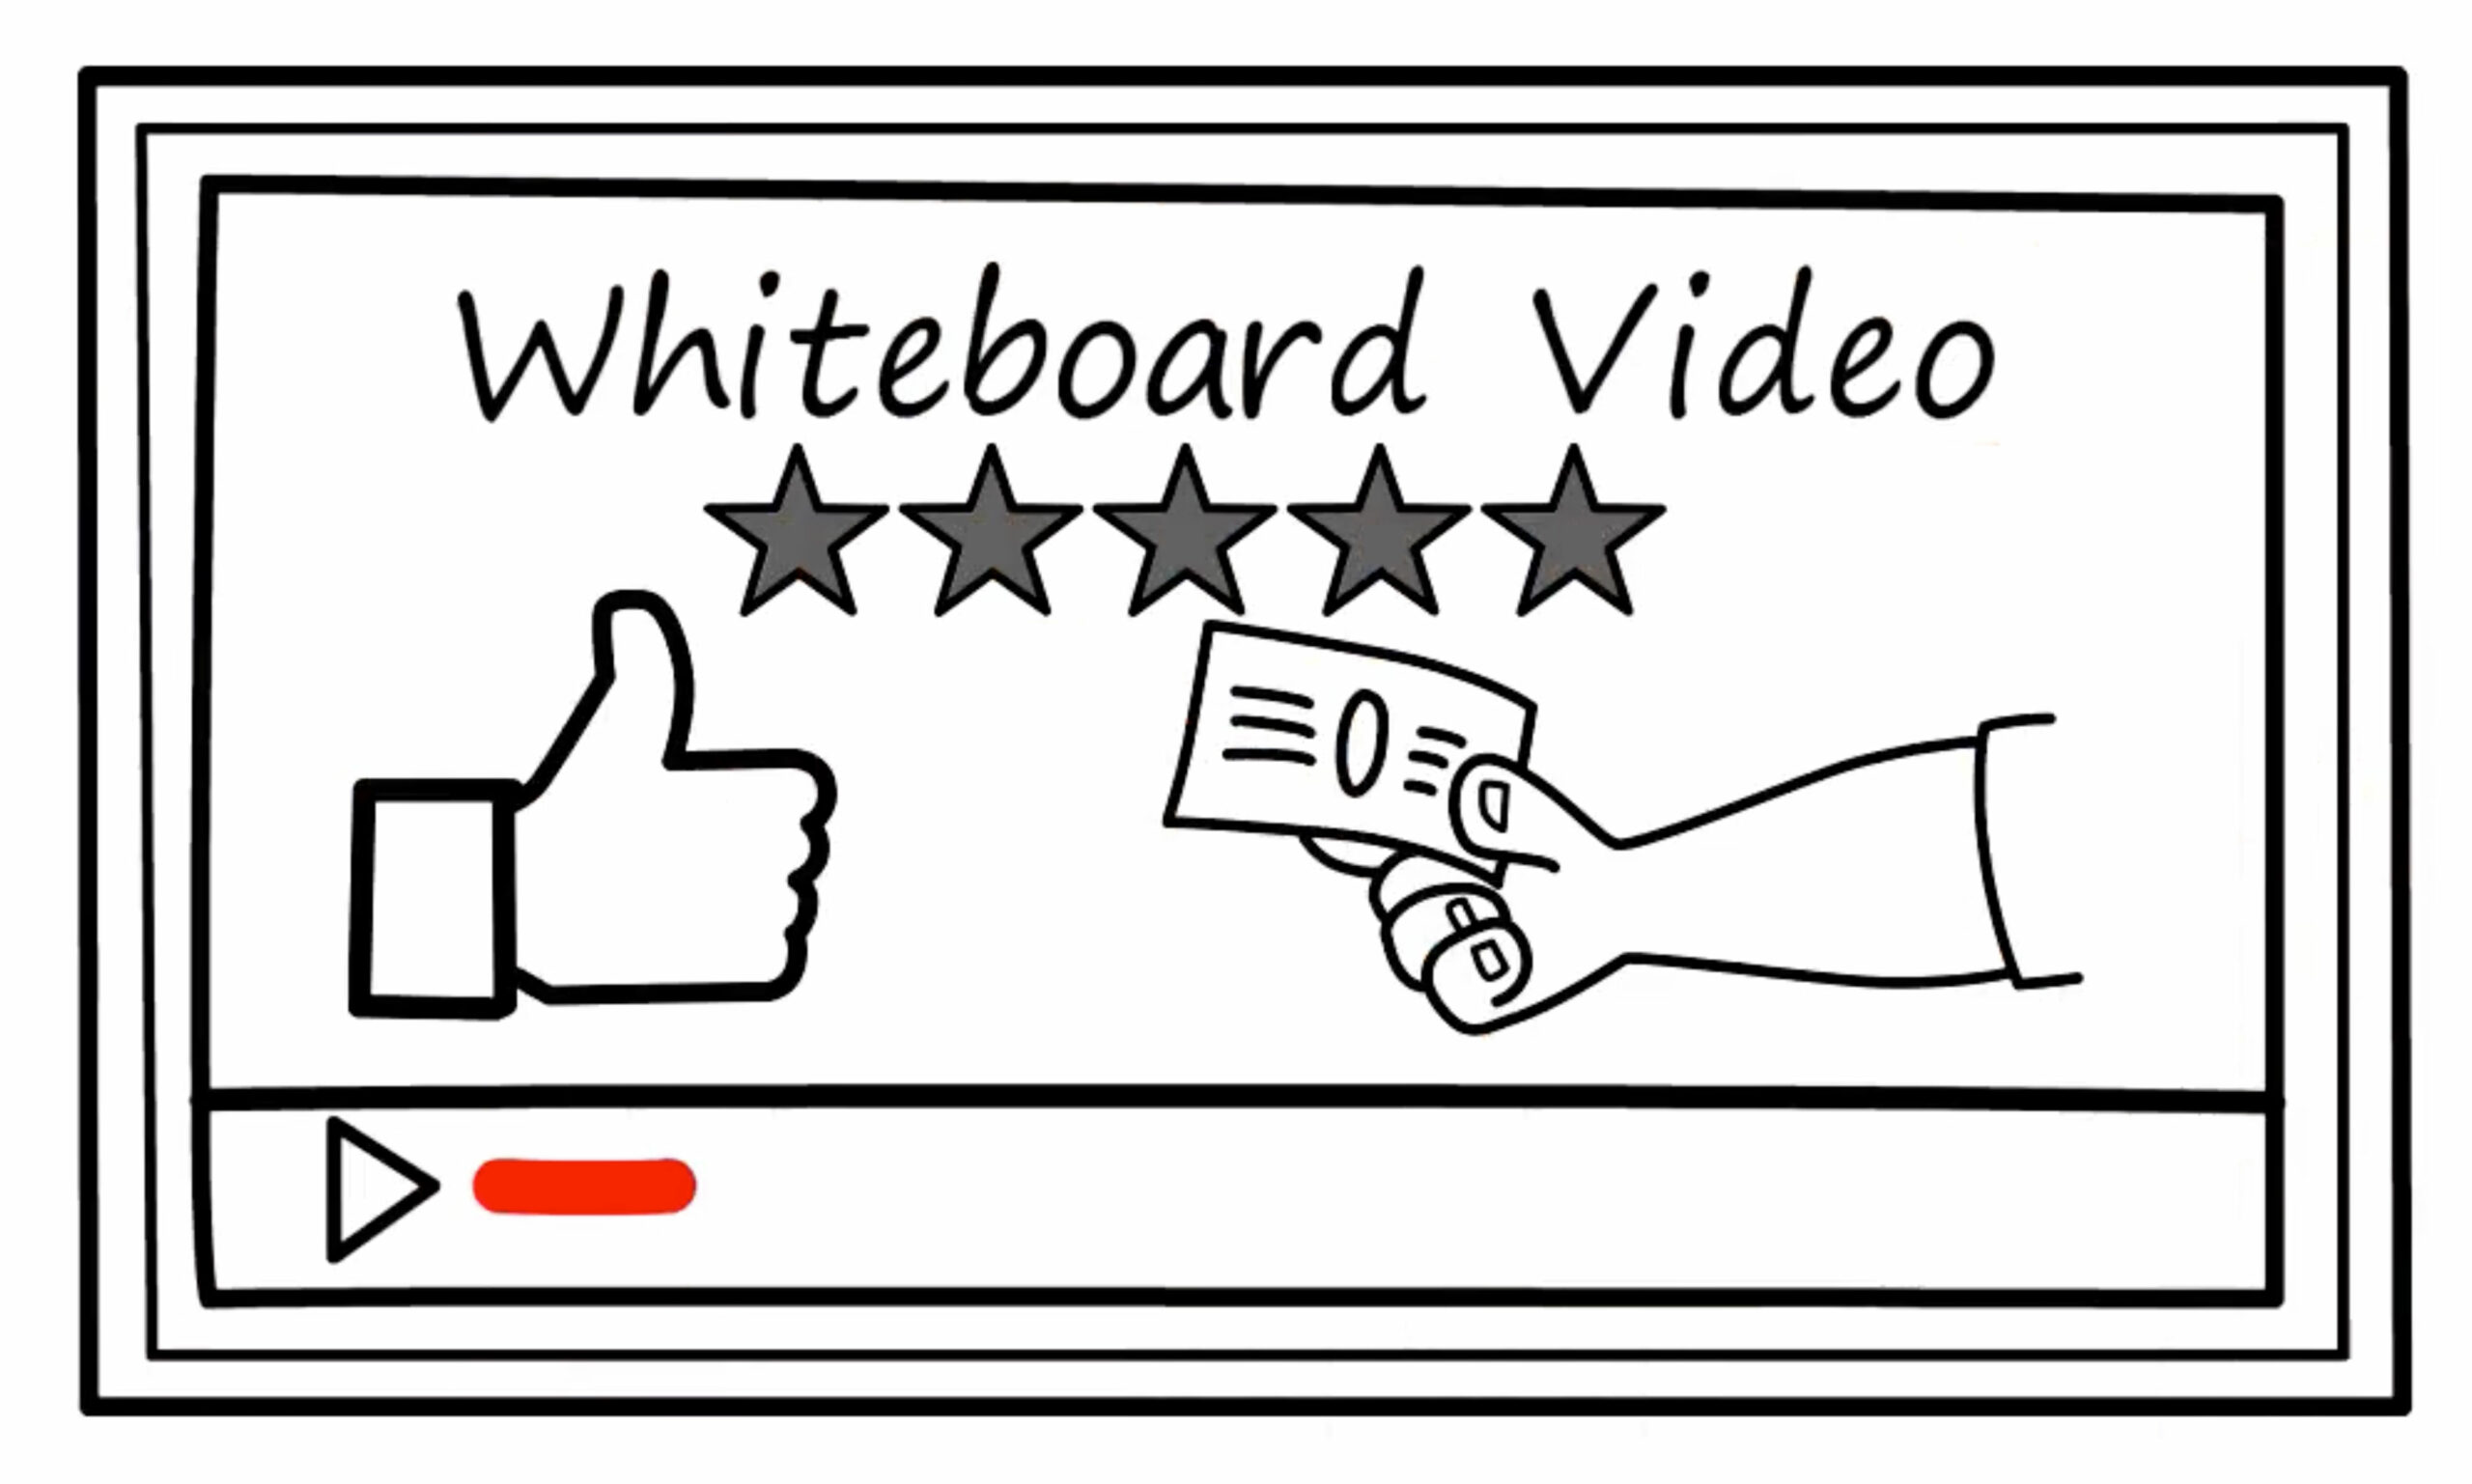 Whiteboard video graphic